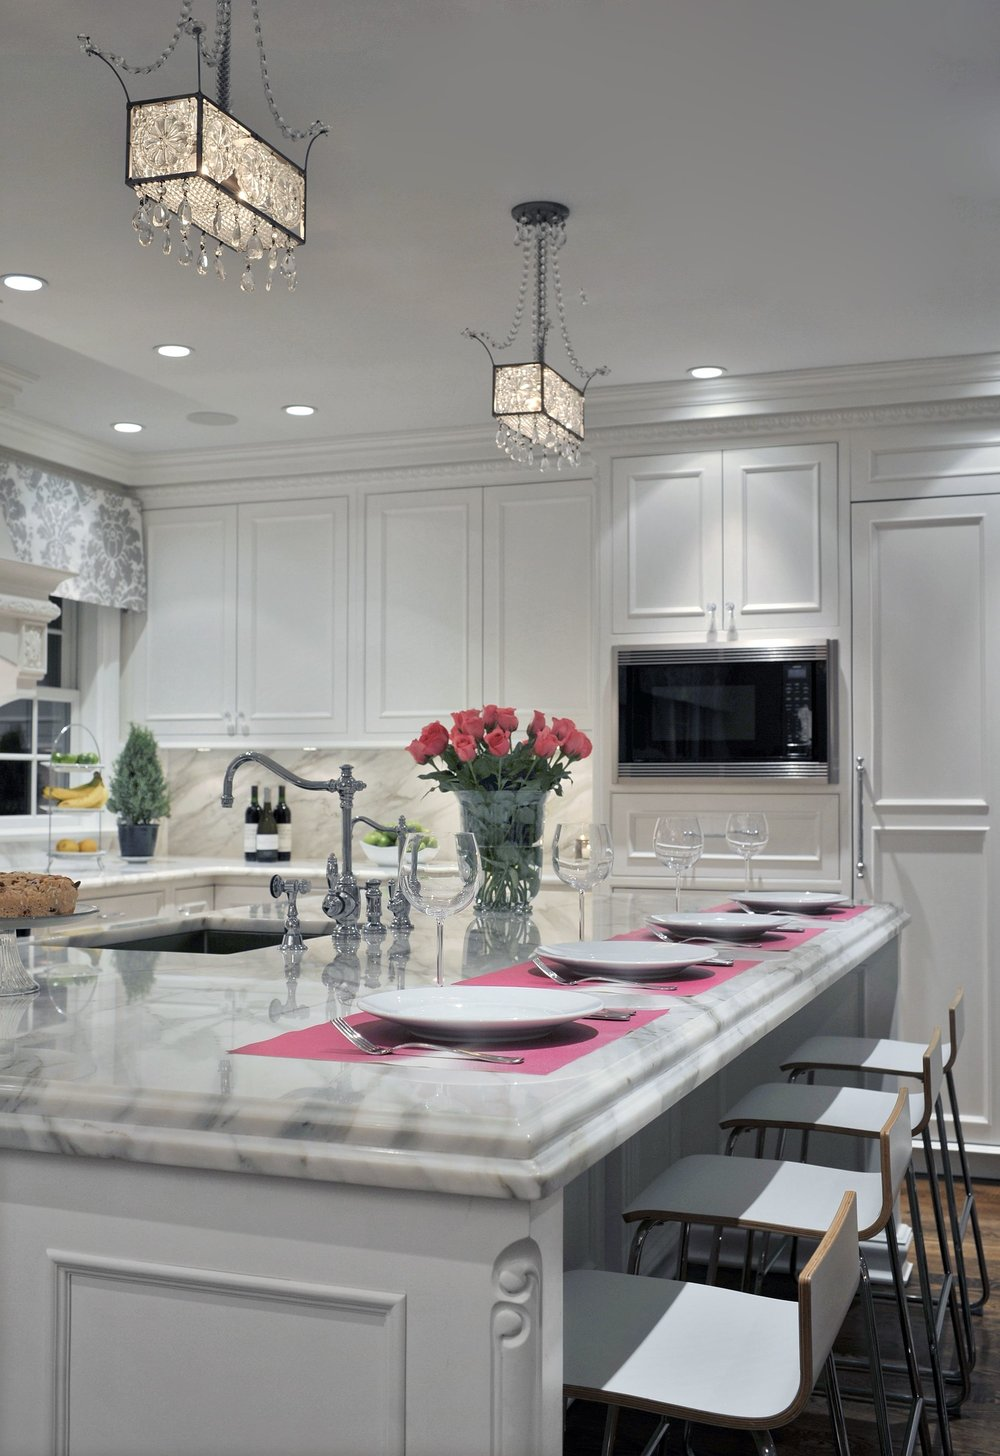 Transitional style kitchen with modern light fixture